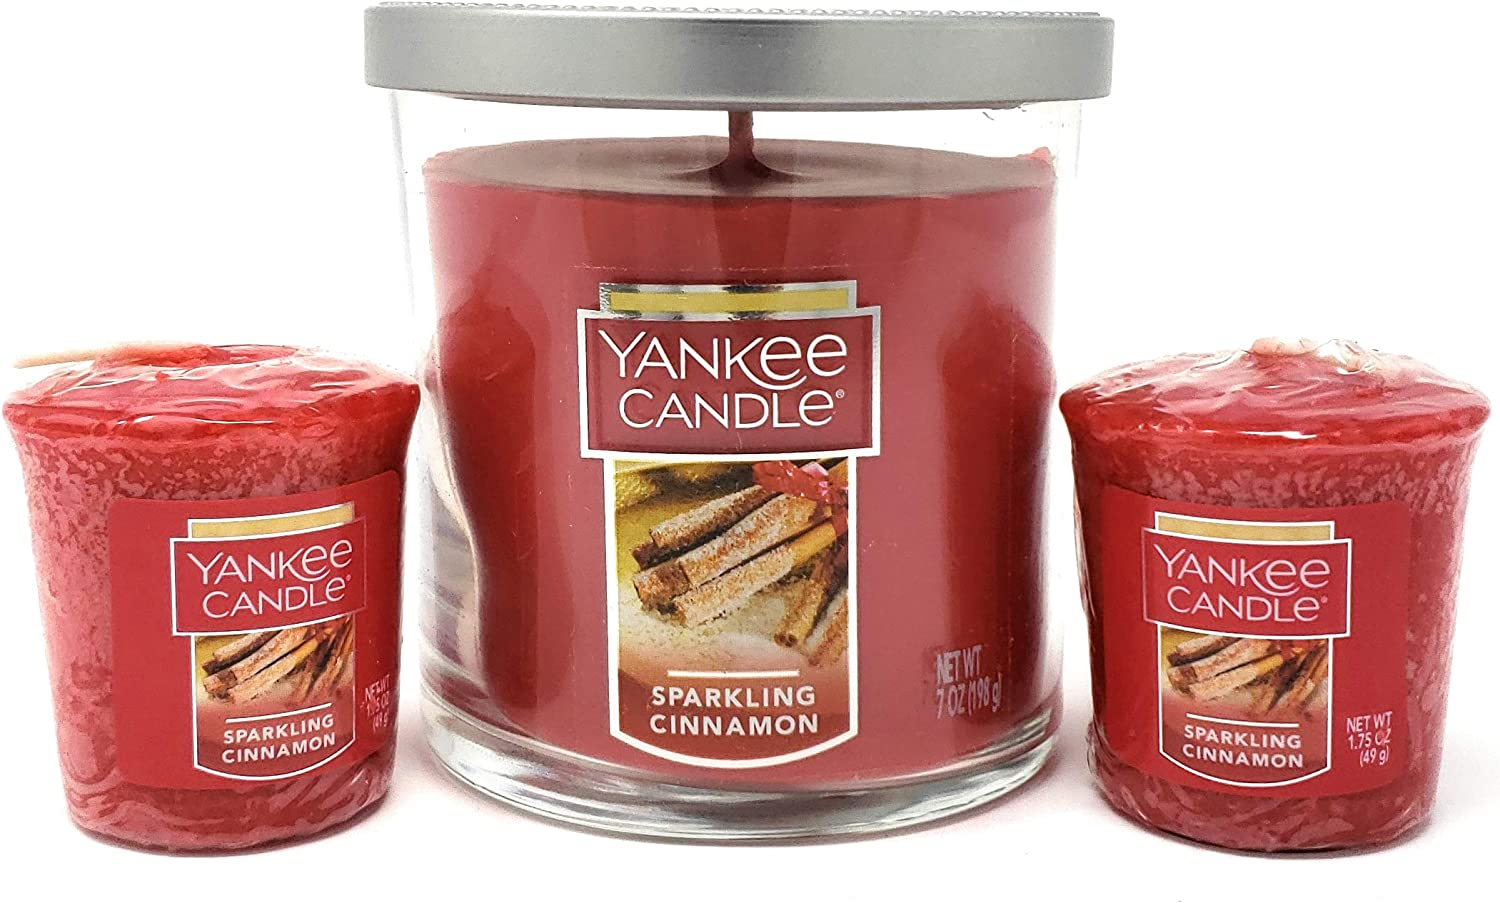 Yankee Candle Sparkling Cinnamon Scented Single-Wick Small Tumbler Candle and 2 Sparkling Cinnamon Votive Candles Bundle Set of 3